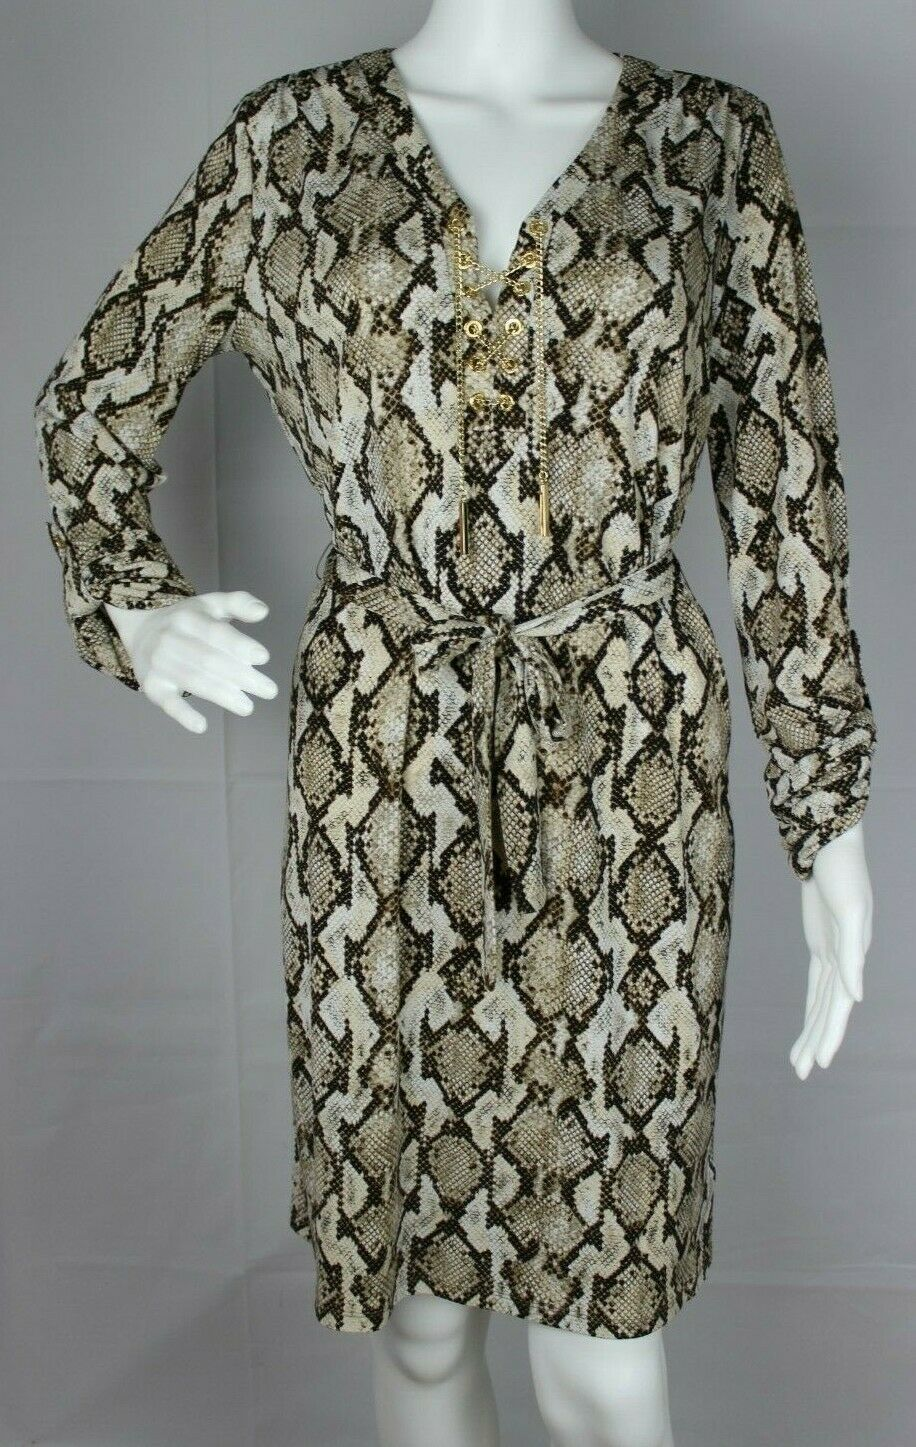 Primary image for Michael Kors women's dress animal print long sleeve size M